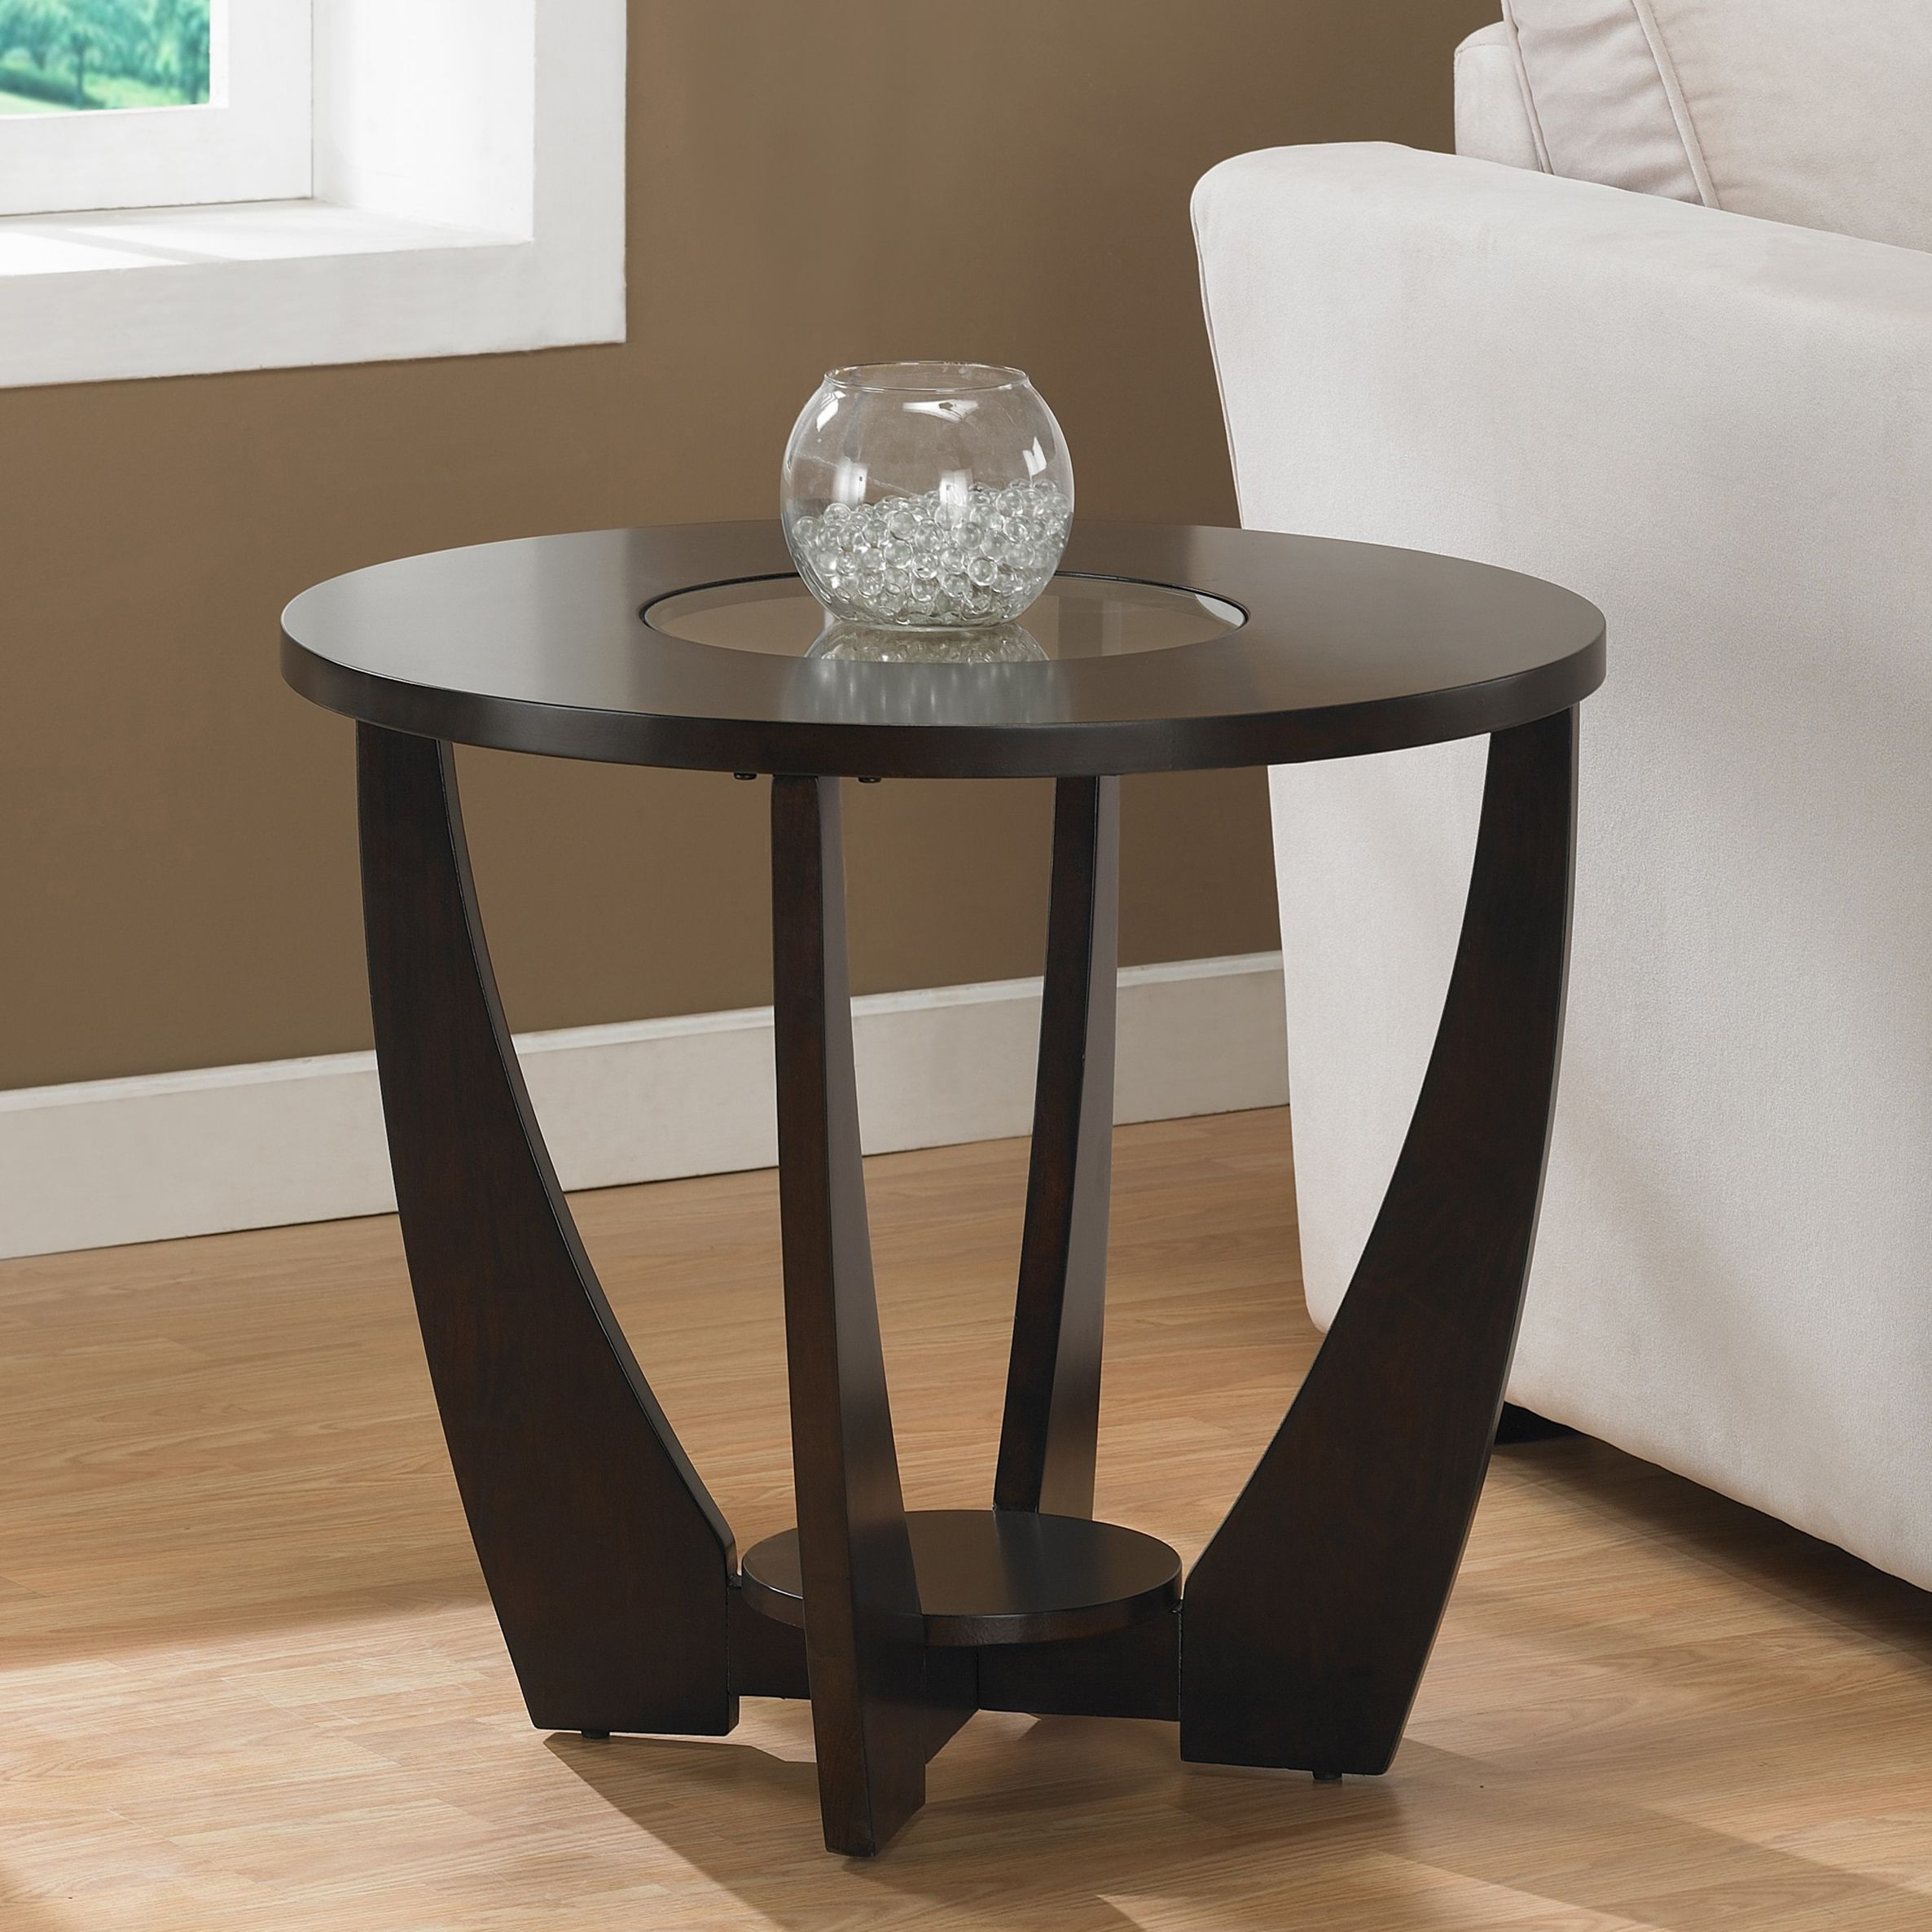 Give Your Living Room A Boost Of Contemporary Style With This Espresso End Table From Archer The Glass Insert In Round Tabletop Adds Lightness And